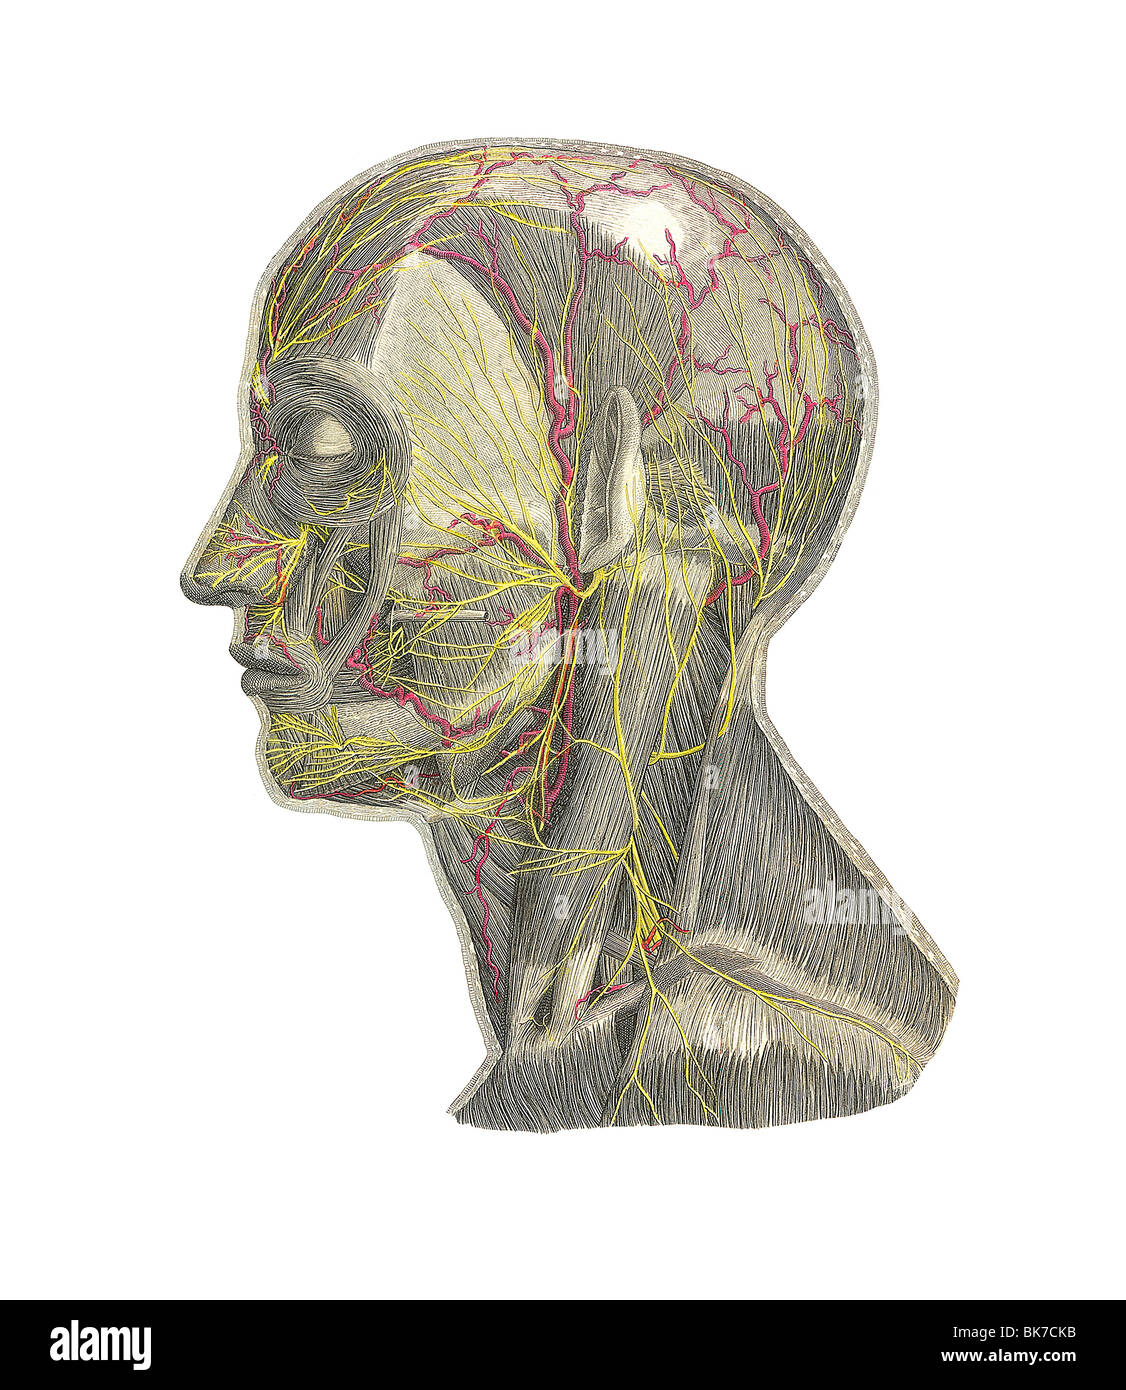 Blood Vessels Of The Head Artwork Stock Photo 29052447 Alamy